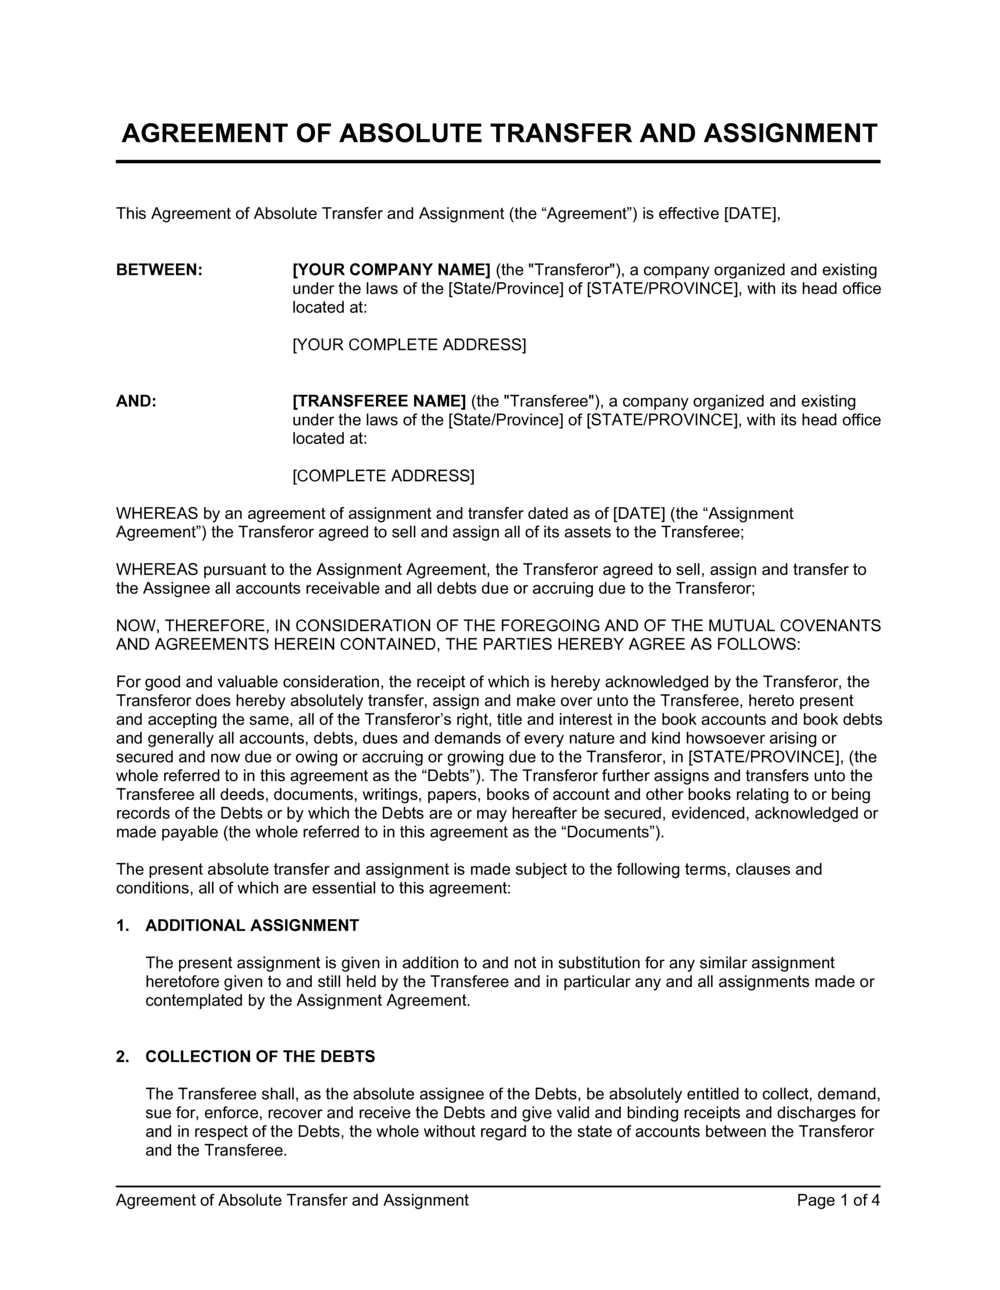 Business-in-a-Box's Agreement of Absolute Transfer and Assignment Template